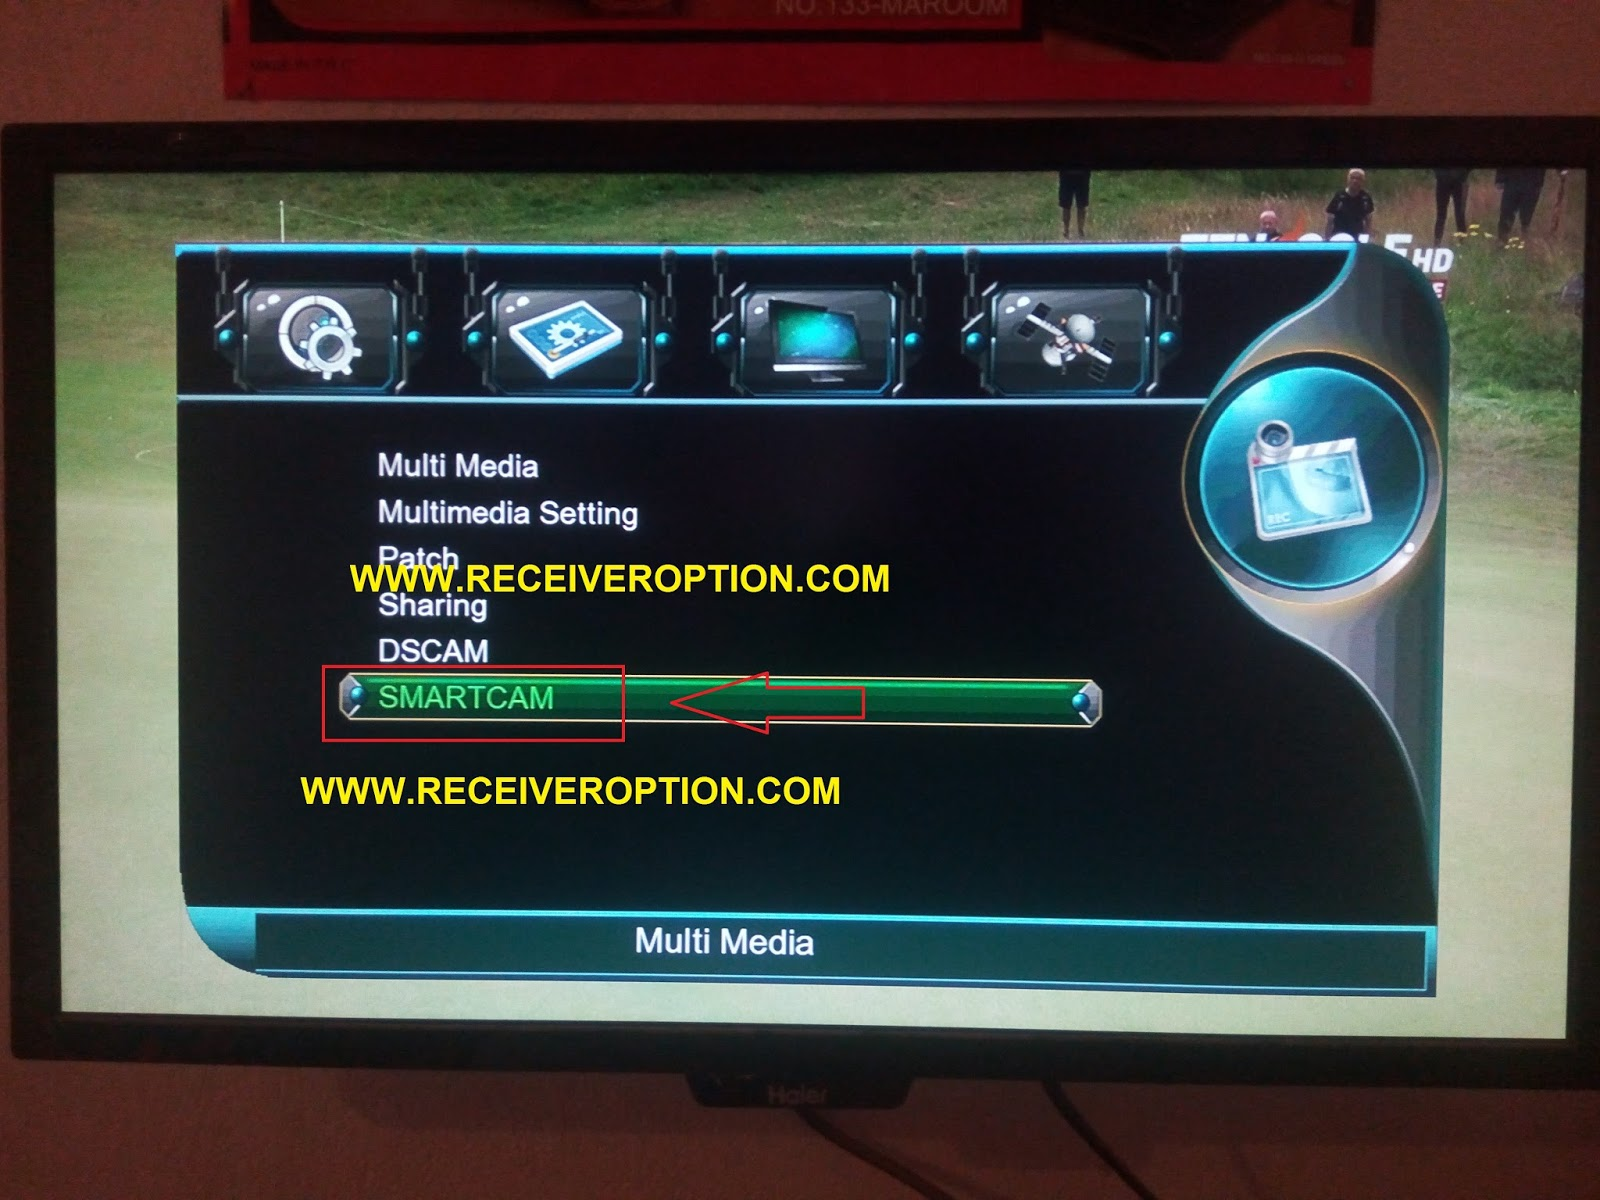 HOW TO INSTALL SMARTCAM SOFTWARE IN MULTIMEDIA RECEIVER